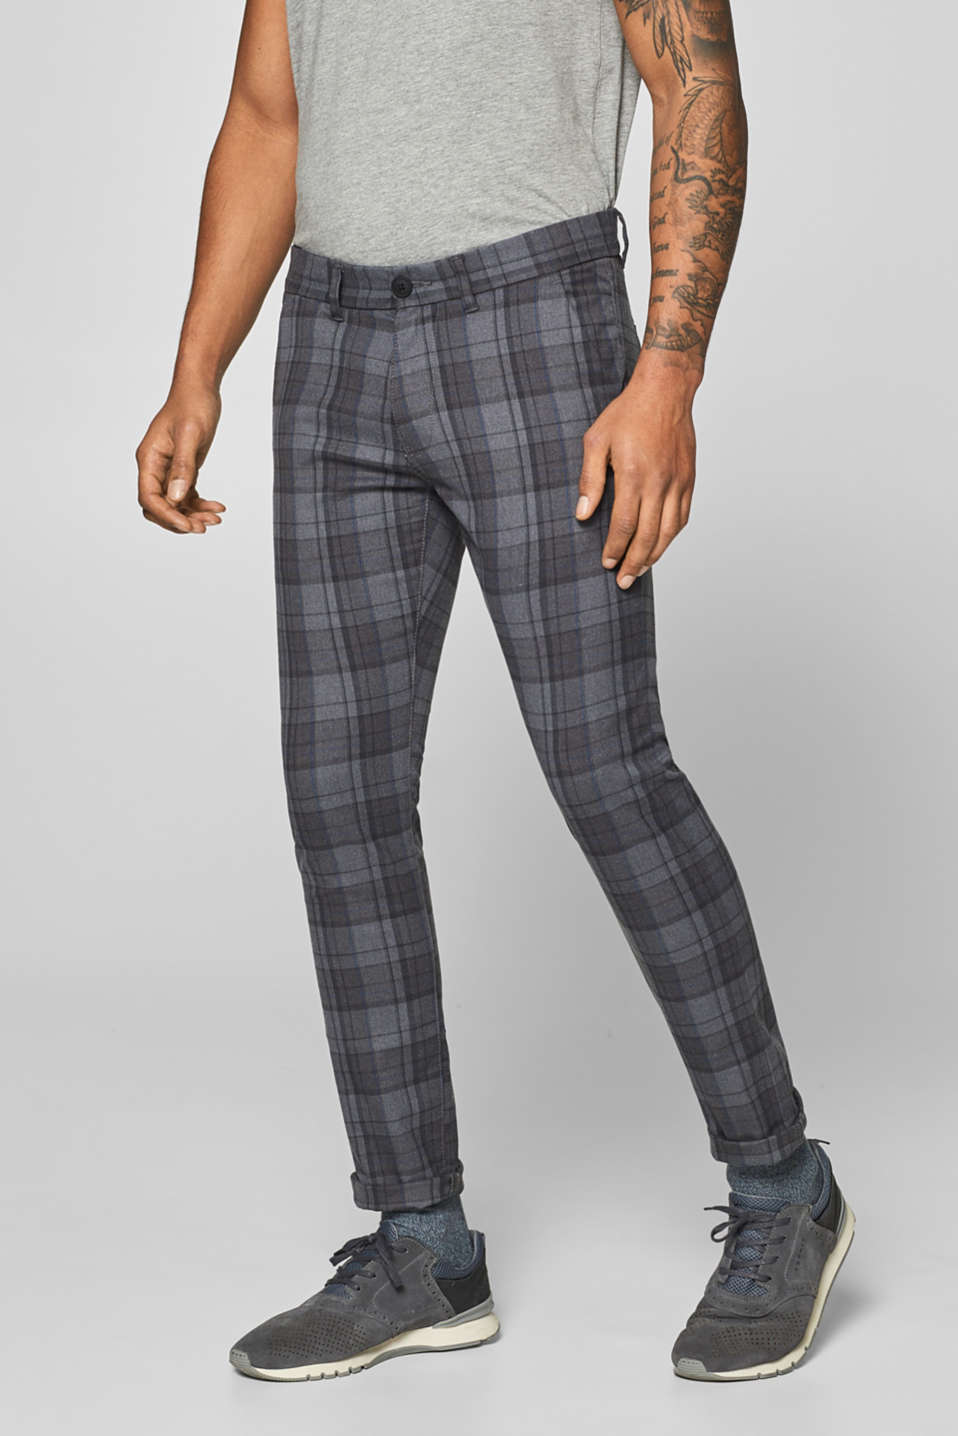 edc - Stretch trousers with a Prince of Wales check pattern